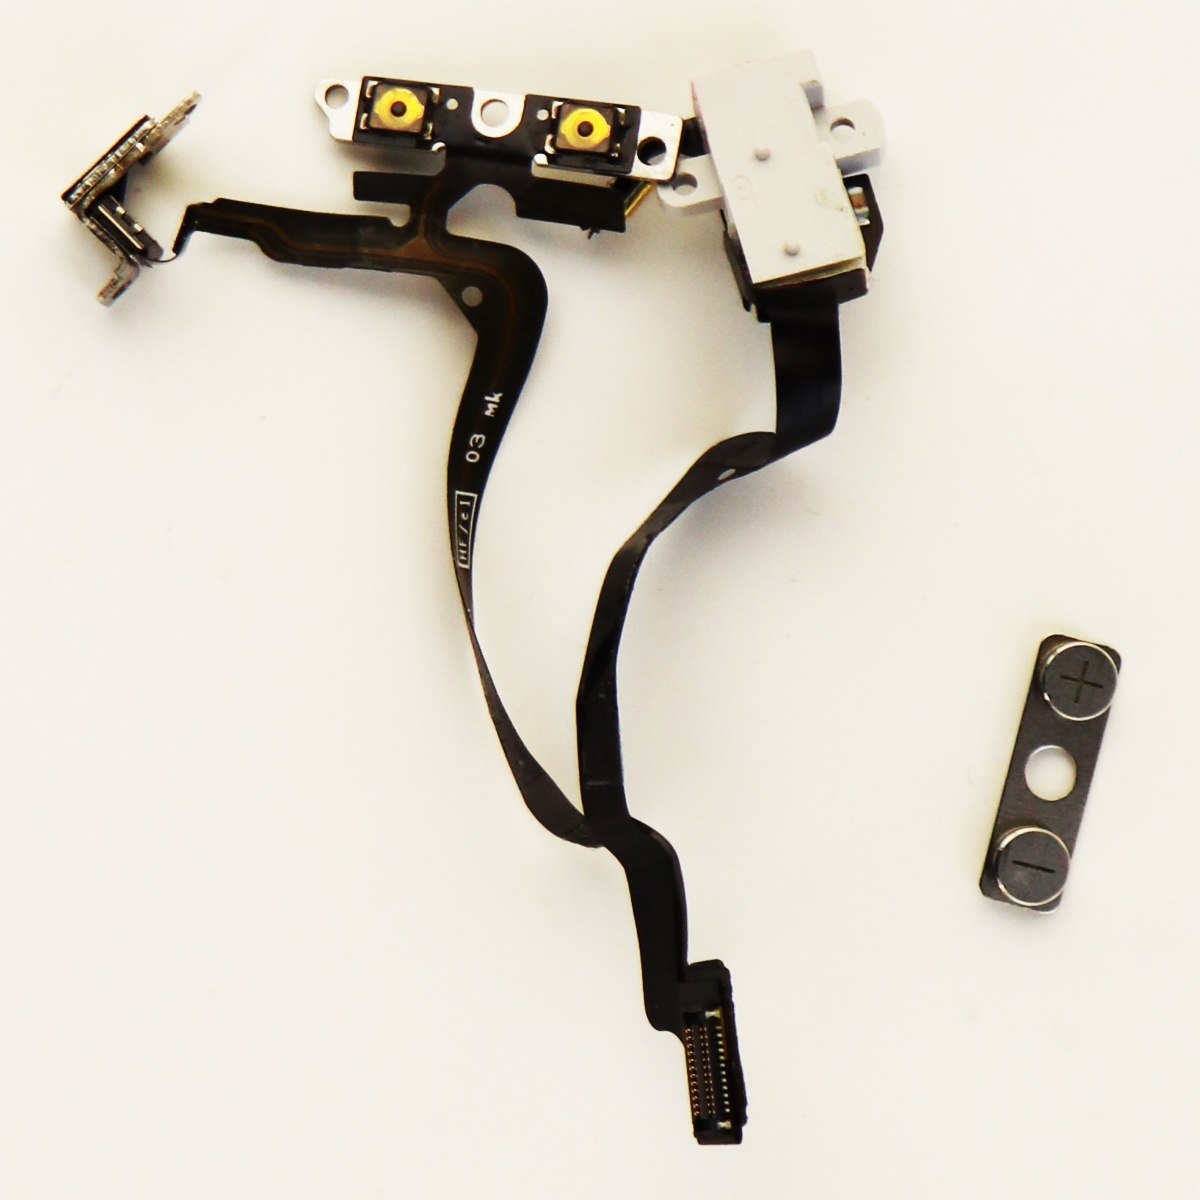 OEM Apple iPhone 4 Replacement Audio Jack Volume Buttons Flex Cable White A1349 (Refurbished)